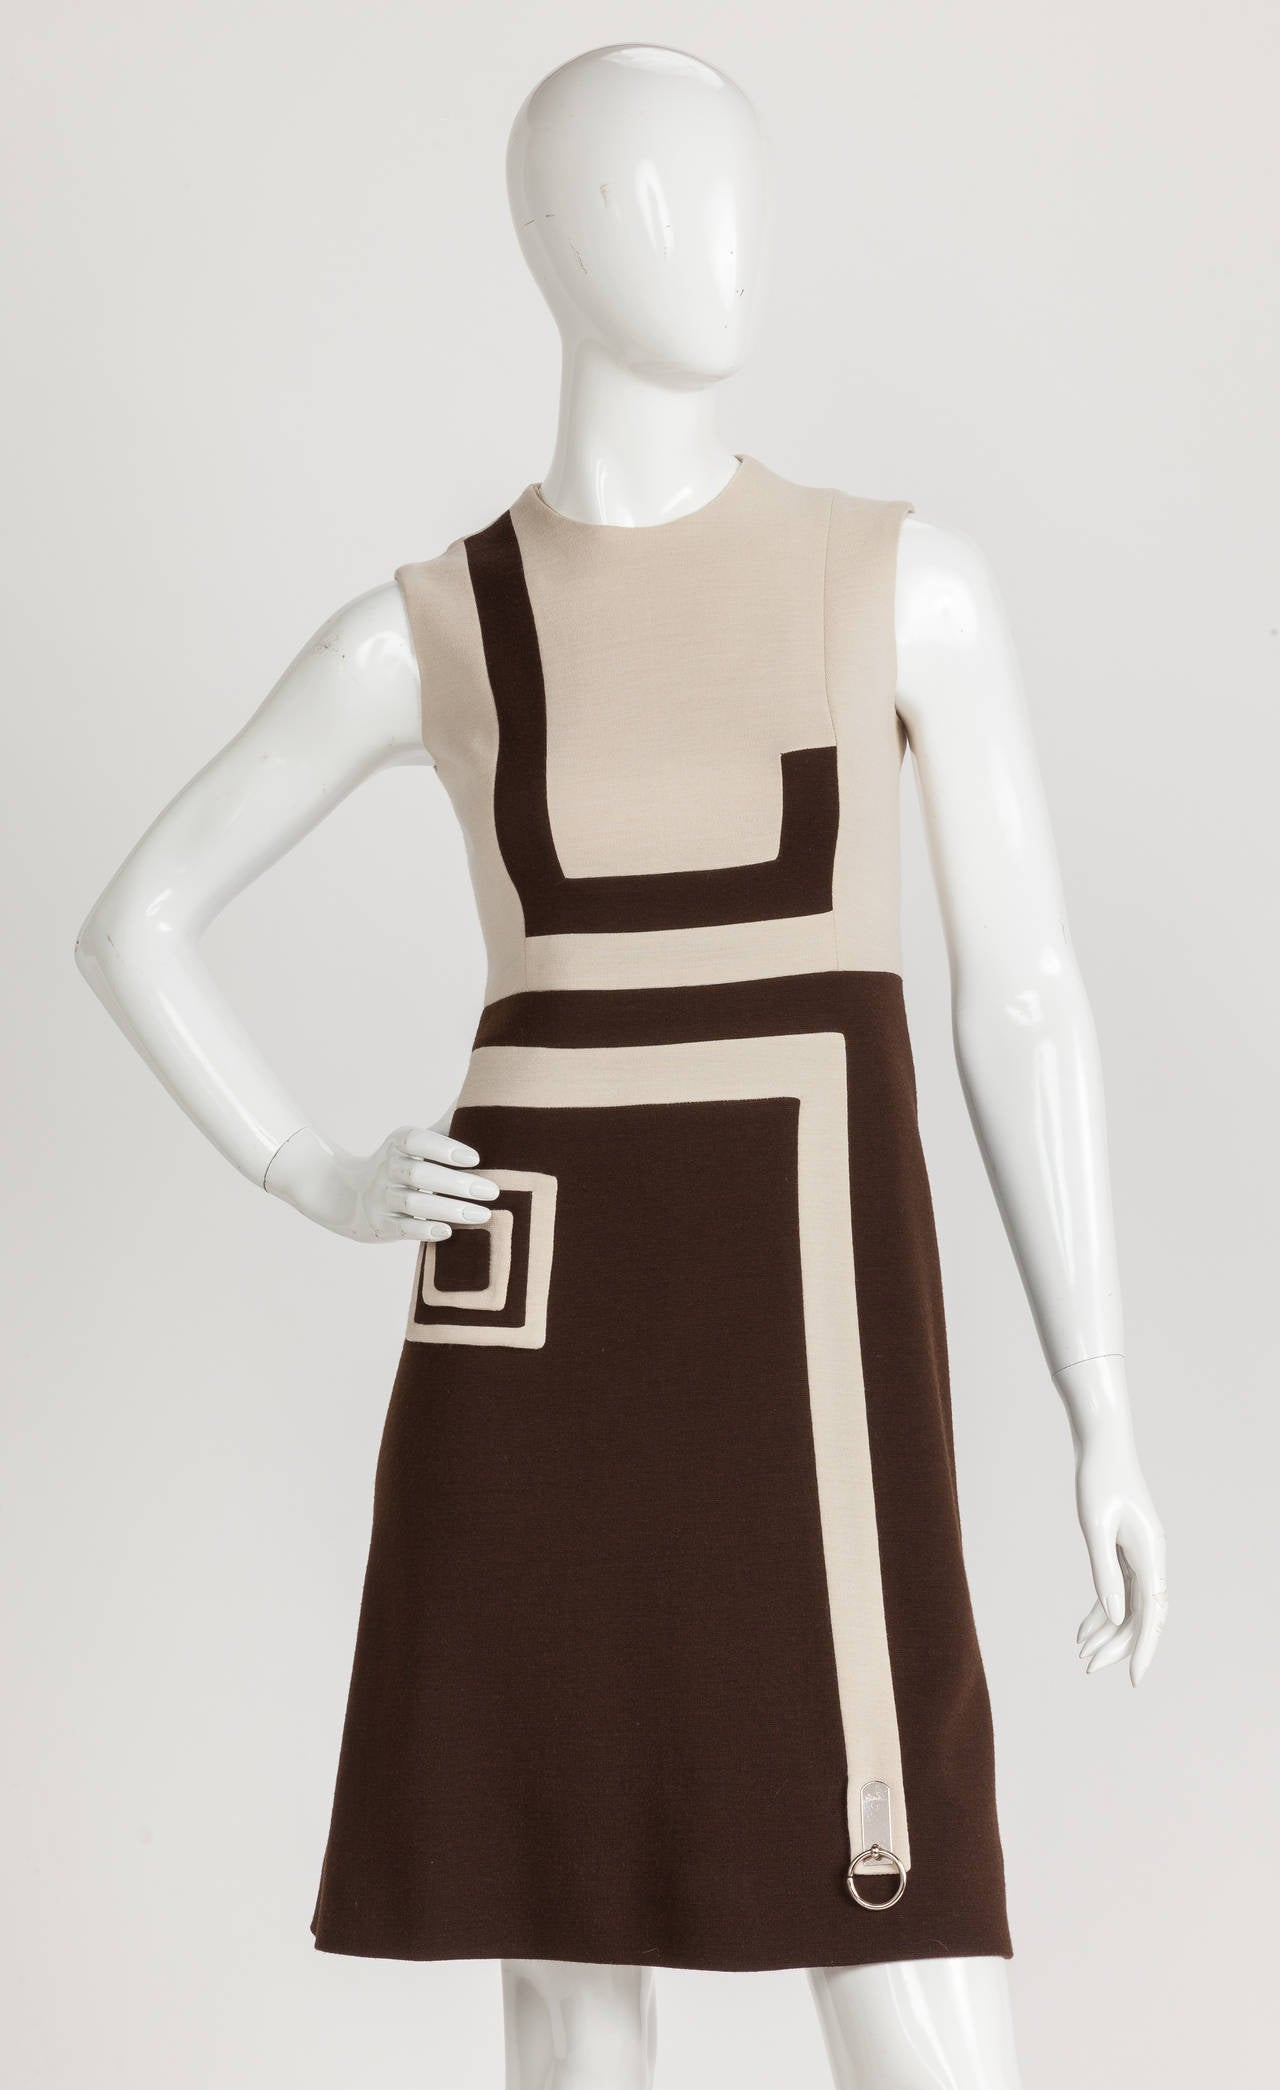 A Pierre Cardin sleeveless wool jersey dress in creme and brown with graphic print design. I'm such a fan of this hip and sophisticated mod day dress with its flared skirt and modern decorative elements: a square inside a square appliquéd at the